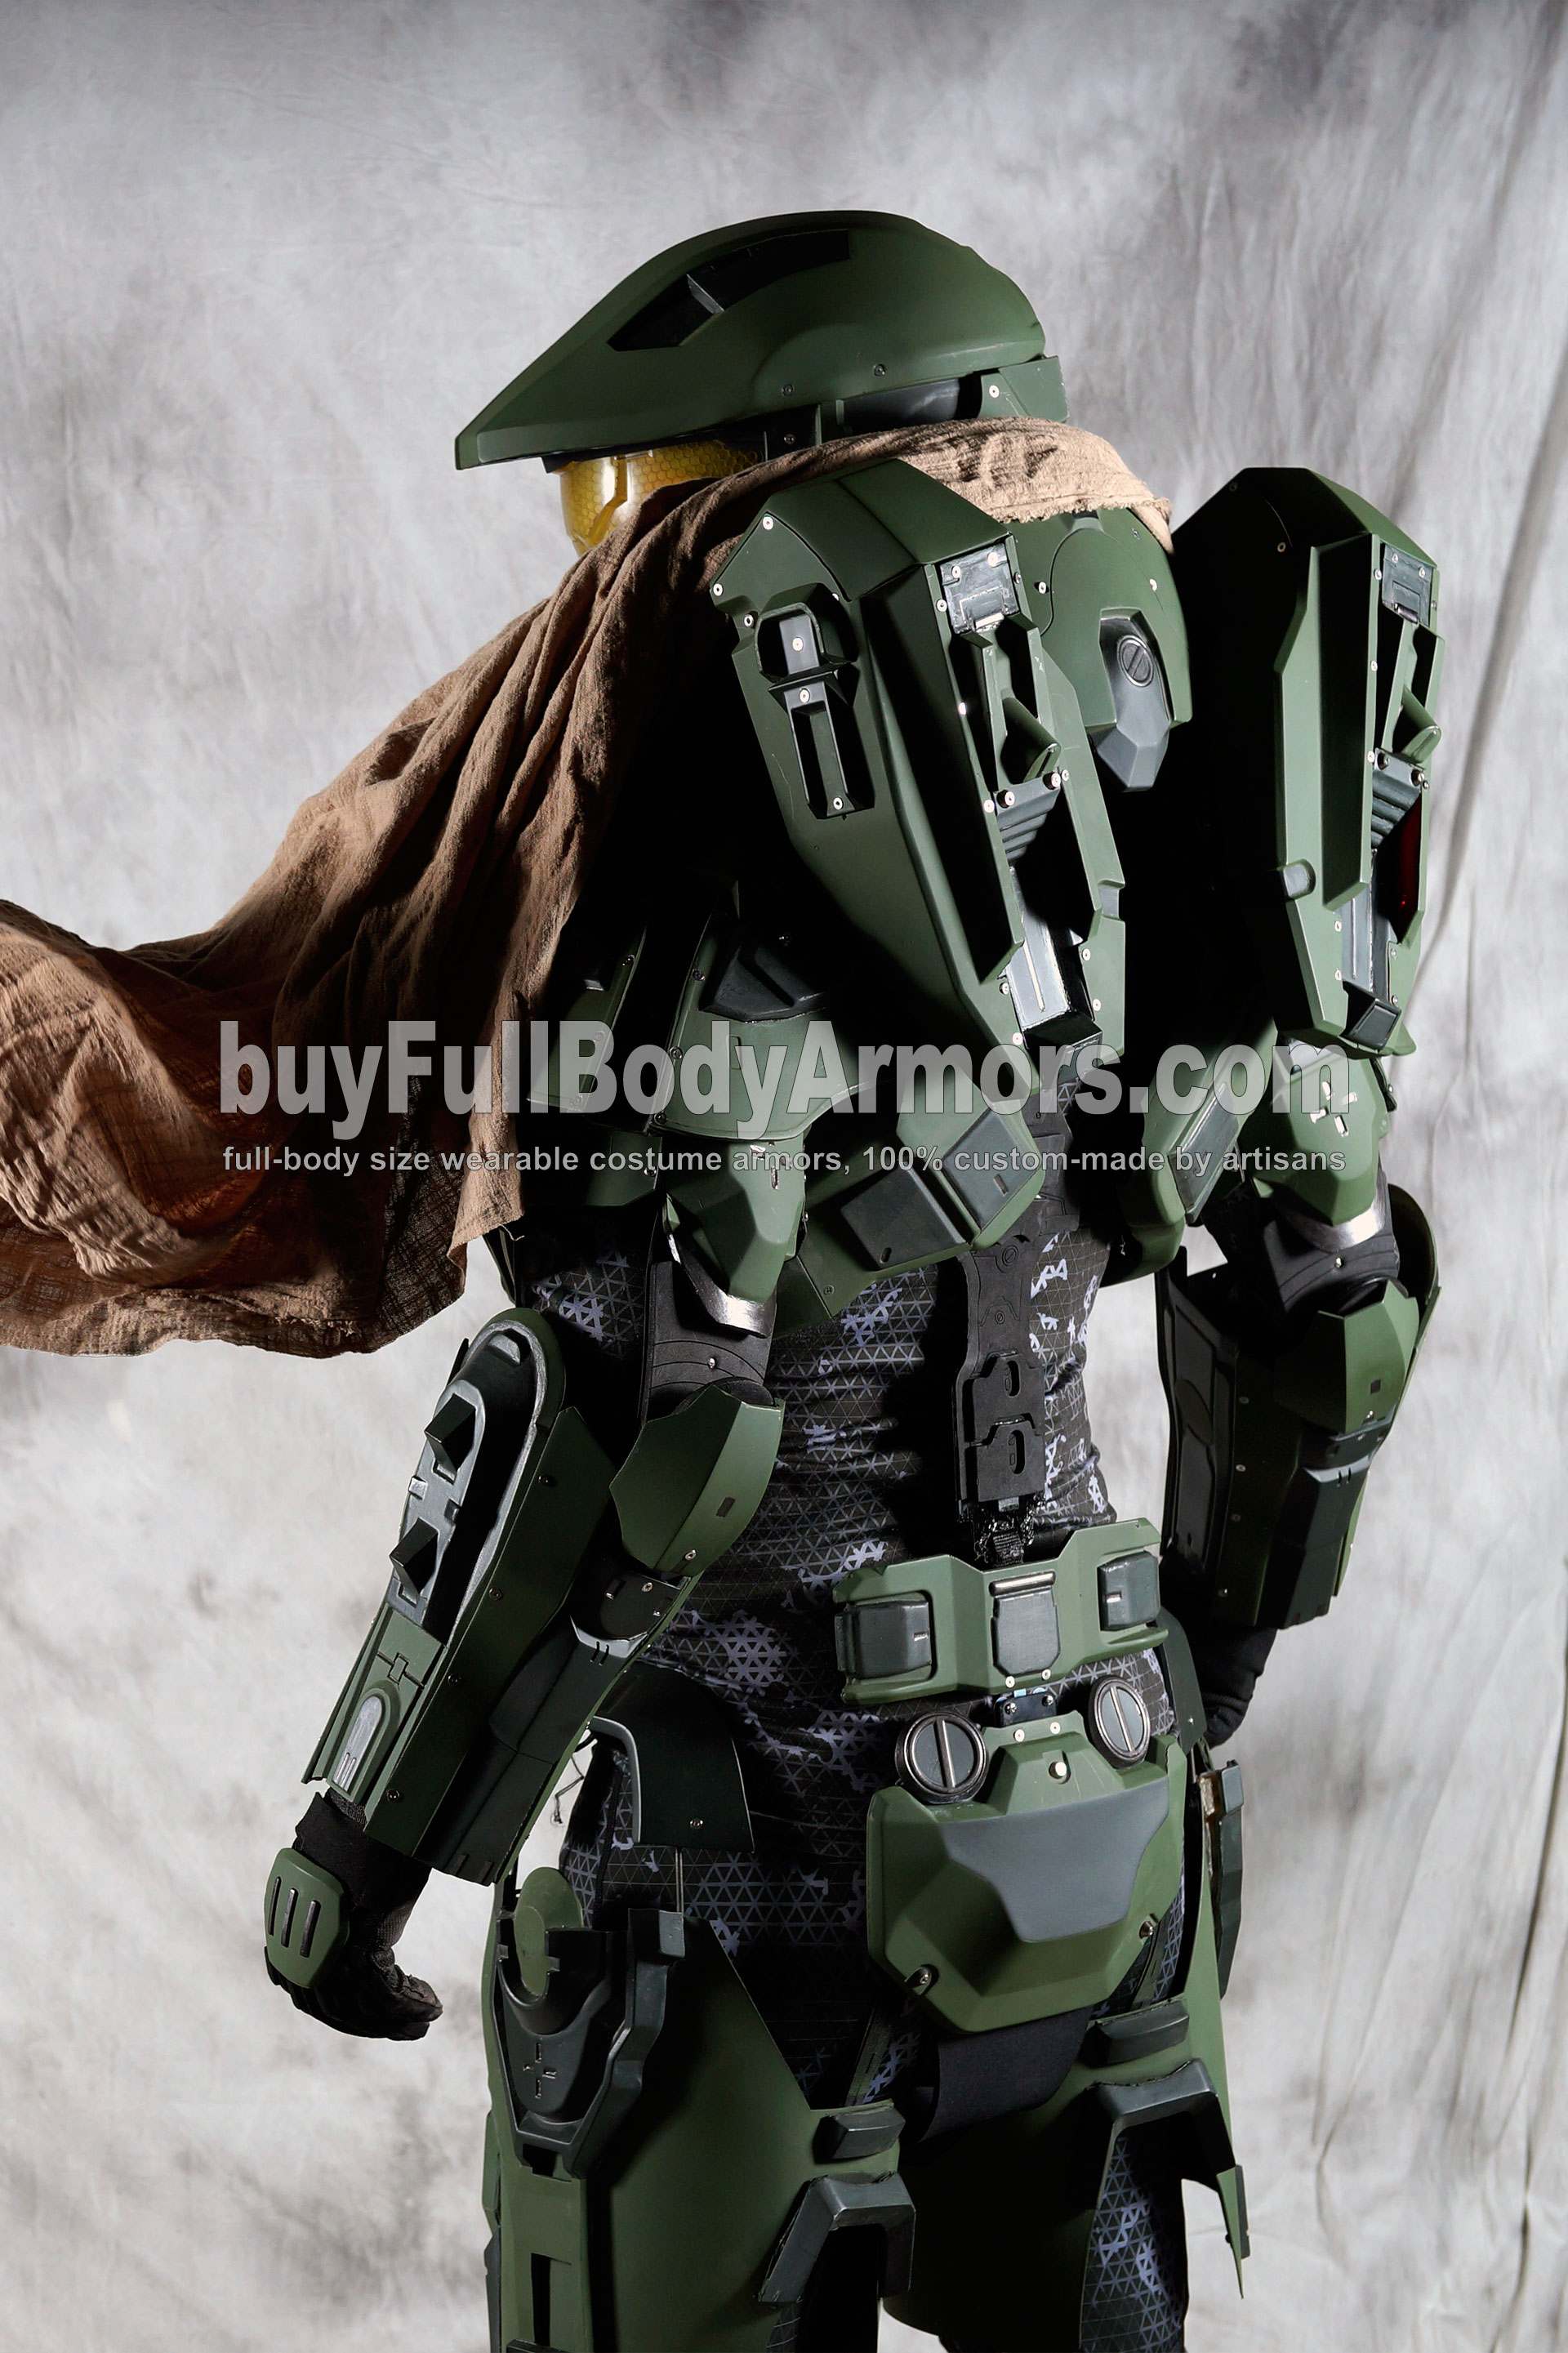 Halo 5 Master Chief Armor Suit Costume 5 : halo 4 costume  - Germanpascual.Com